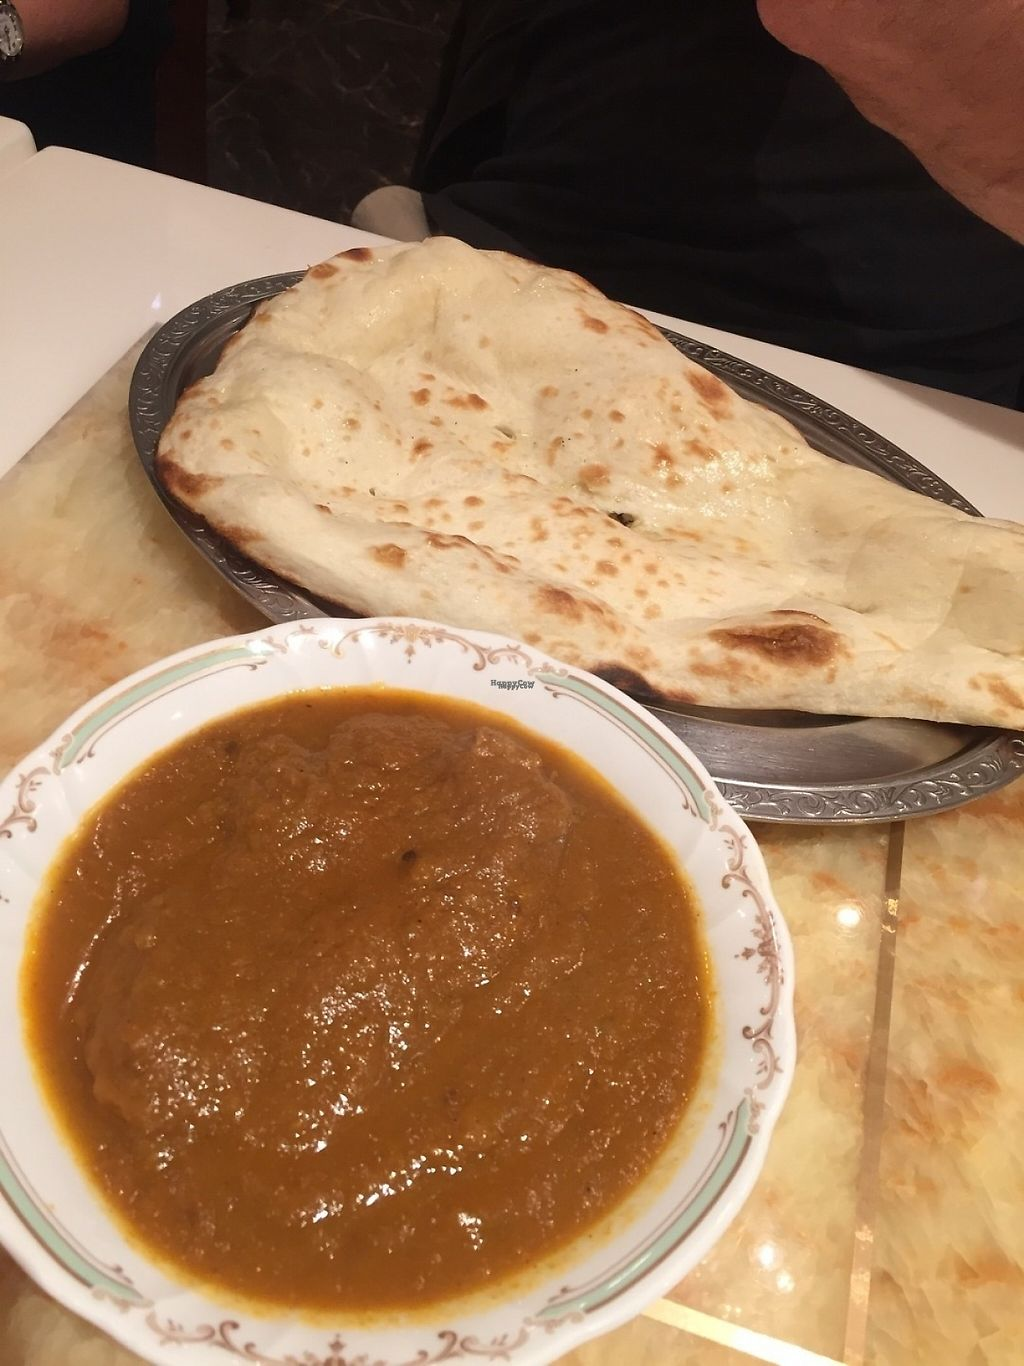 """Photo of Milan Nataraj Shibuya  by <a href=""""/members/profile/PaulaKollienGjerde"""">PaulaKollienGjerde</a> <br/>Soy meat curry + naan  <br/> April 19, 2017  - <a href='/contact/abuse/image/65365/249964'>Report</a>"""